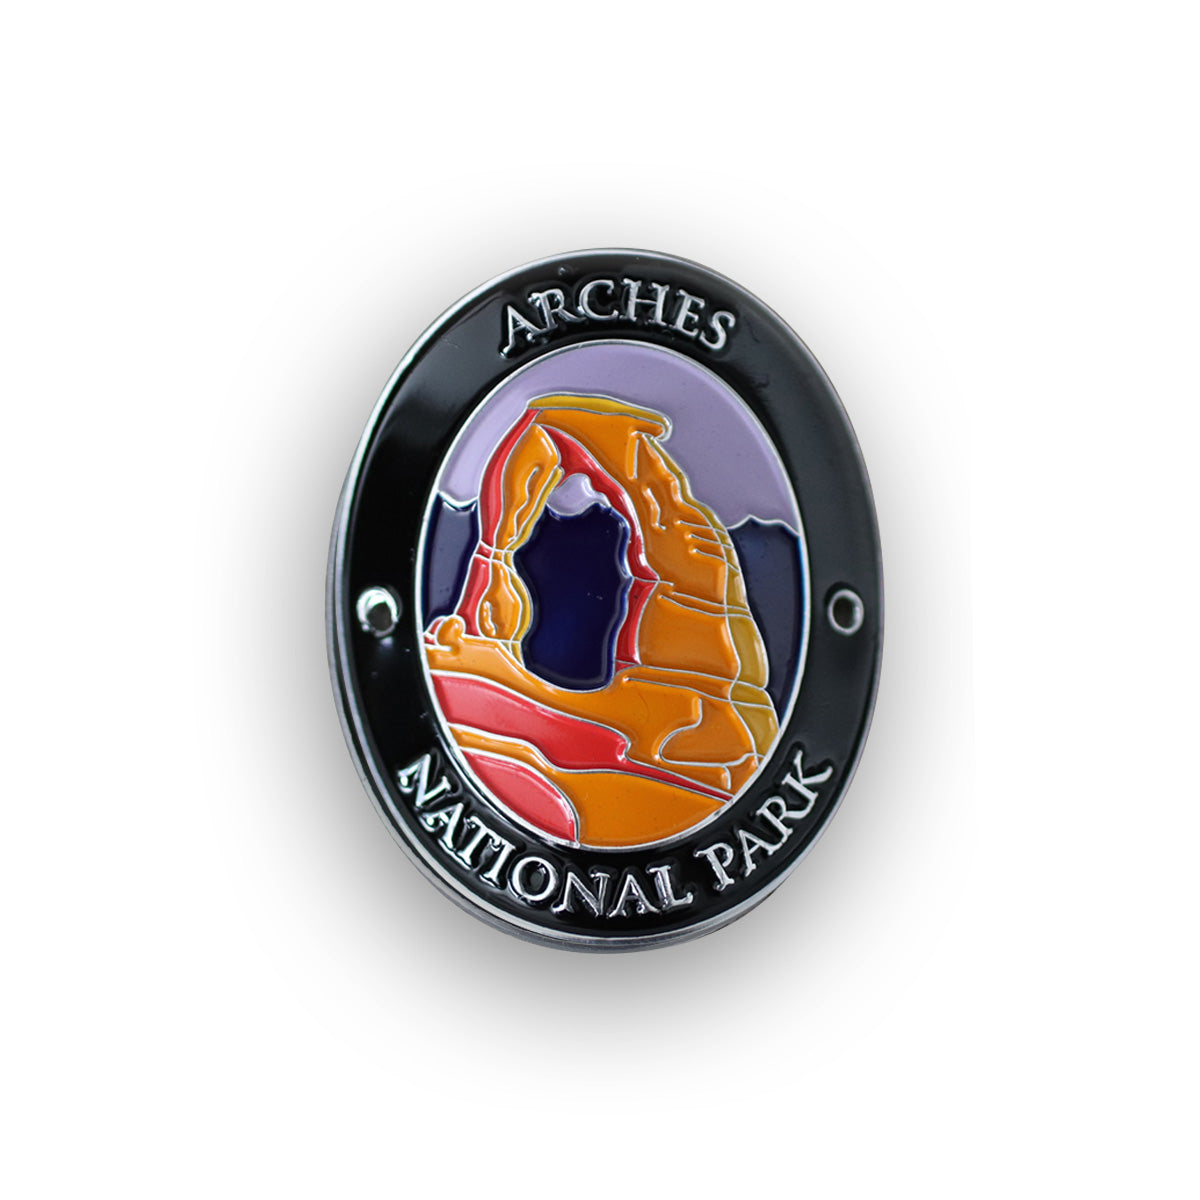 Arches National Park Walking Stick Medallion